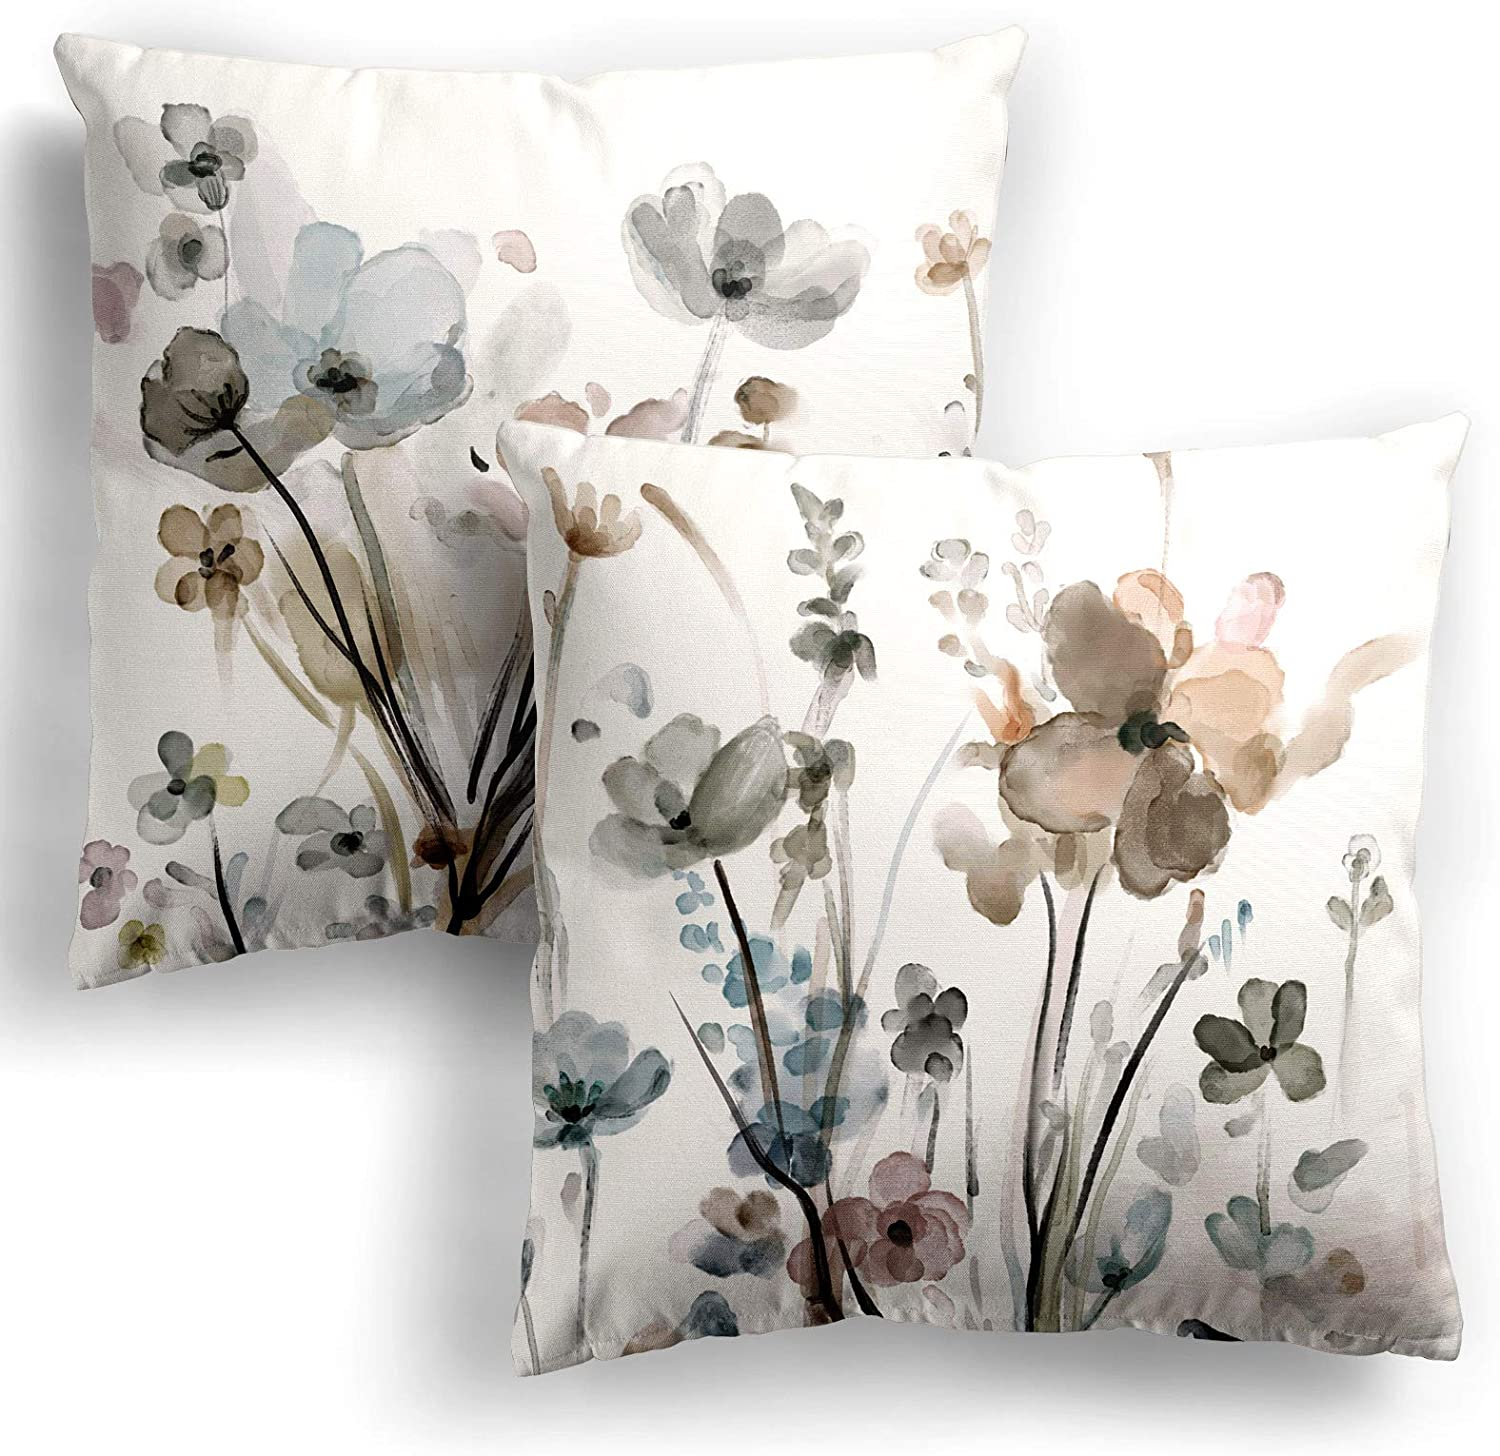 Wholesale Flower Throw Pillow Covers 20x20 Set 2 C Cozy Mail order Flowers of